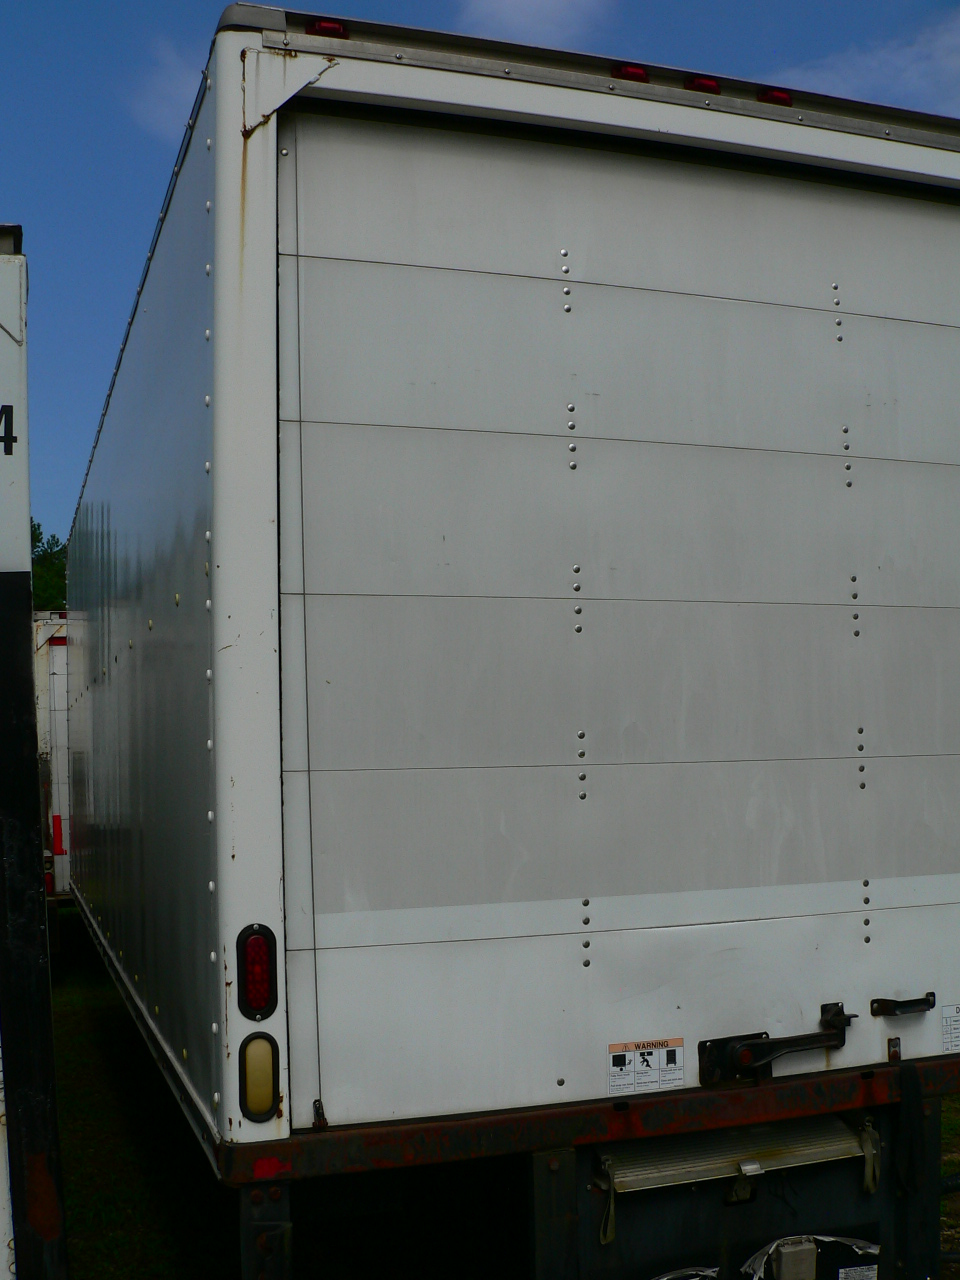 Truck Beds For Sale >> Used Truck bodies with walk ramps that are 24 feet long